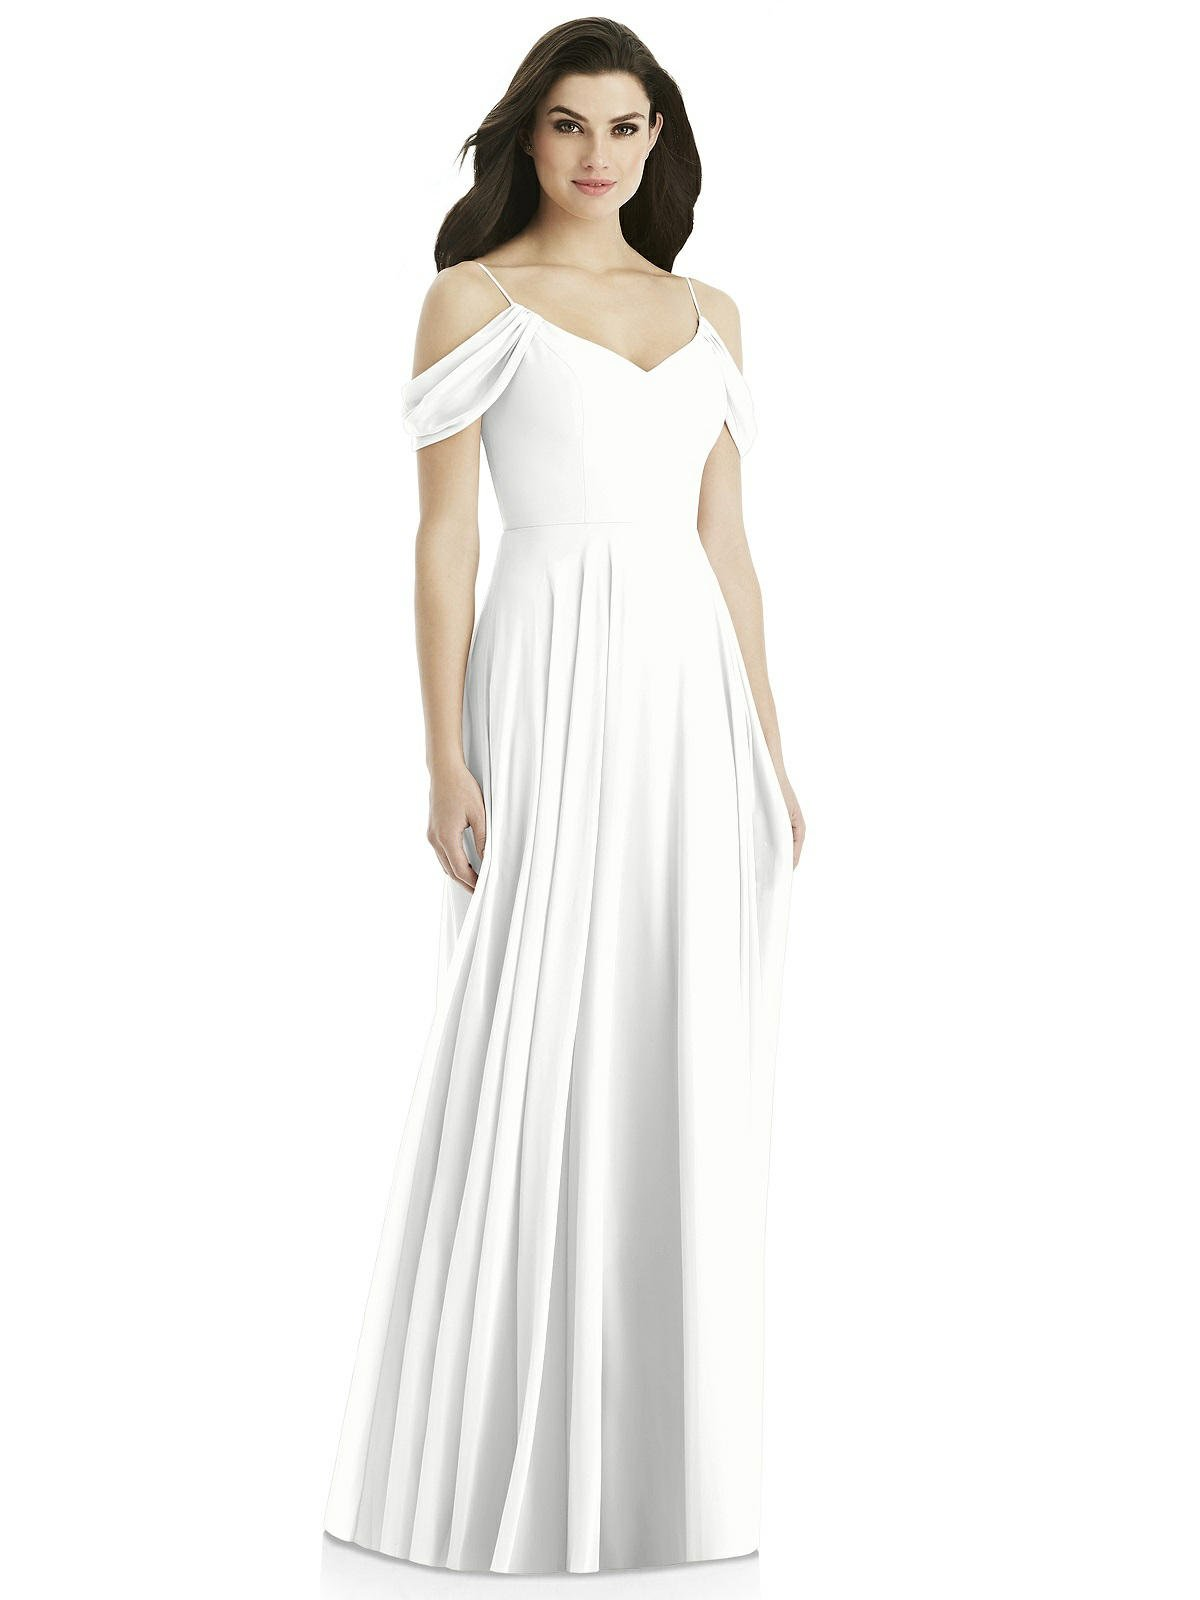 0f21fe2a285c Yilis Women's A Line Pleated Chiffon Off The Shoulder Bridesmaid Dress Long Formal  Wedding Evening Gown White 8